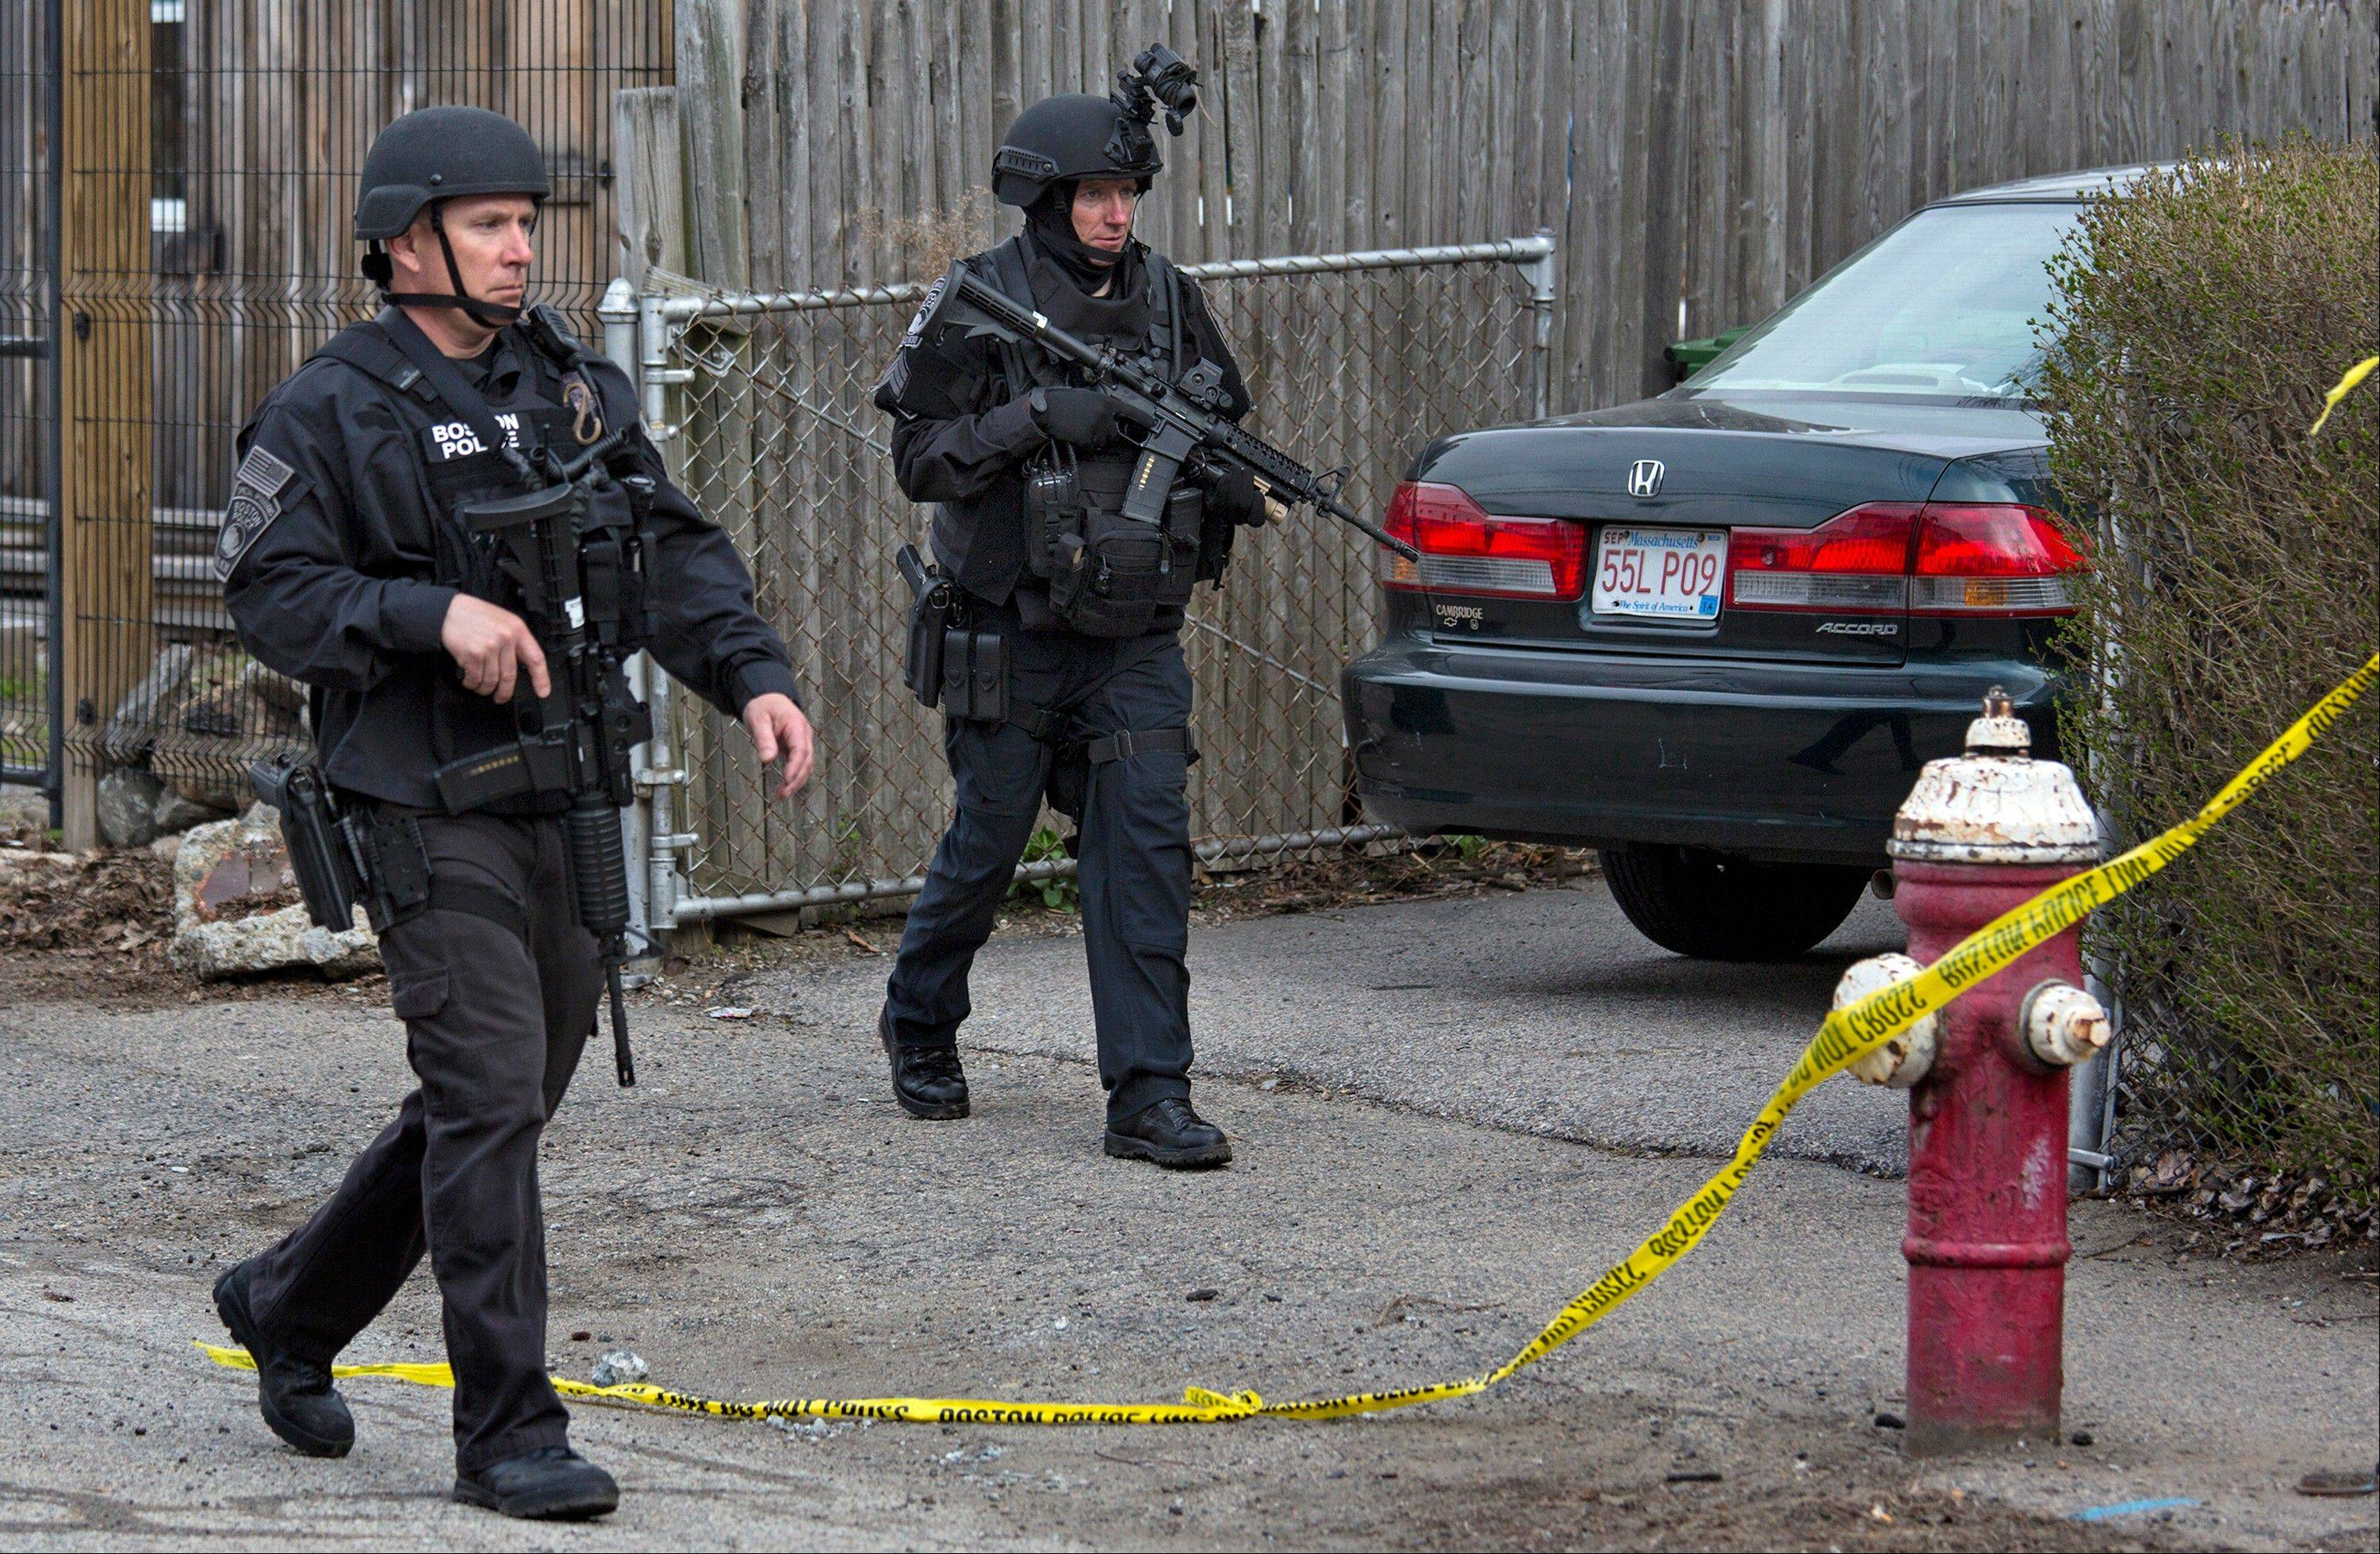 Police continue to patrol the neighborhoods of Watertown, Mass. Friday, April 19, 2013, as a massive search continued for one of two suspects in the Boston Marathon bombing. A second suspect died in the early morning hours after an encounter with law enforcement.